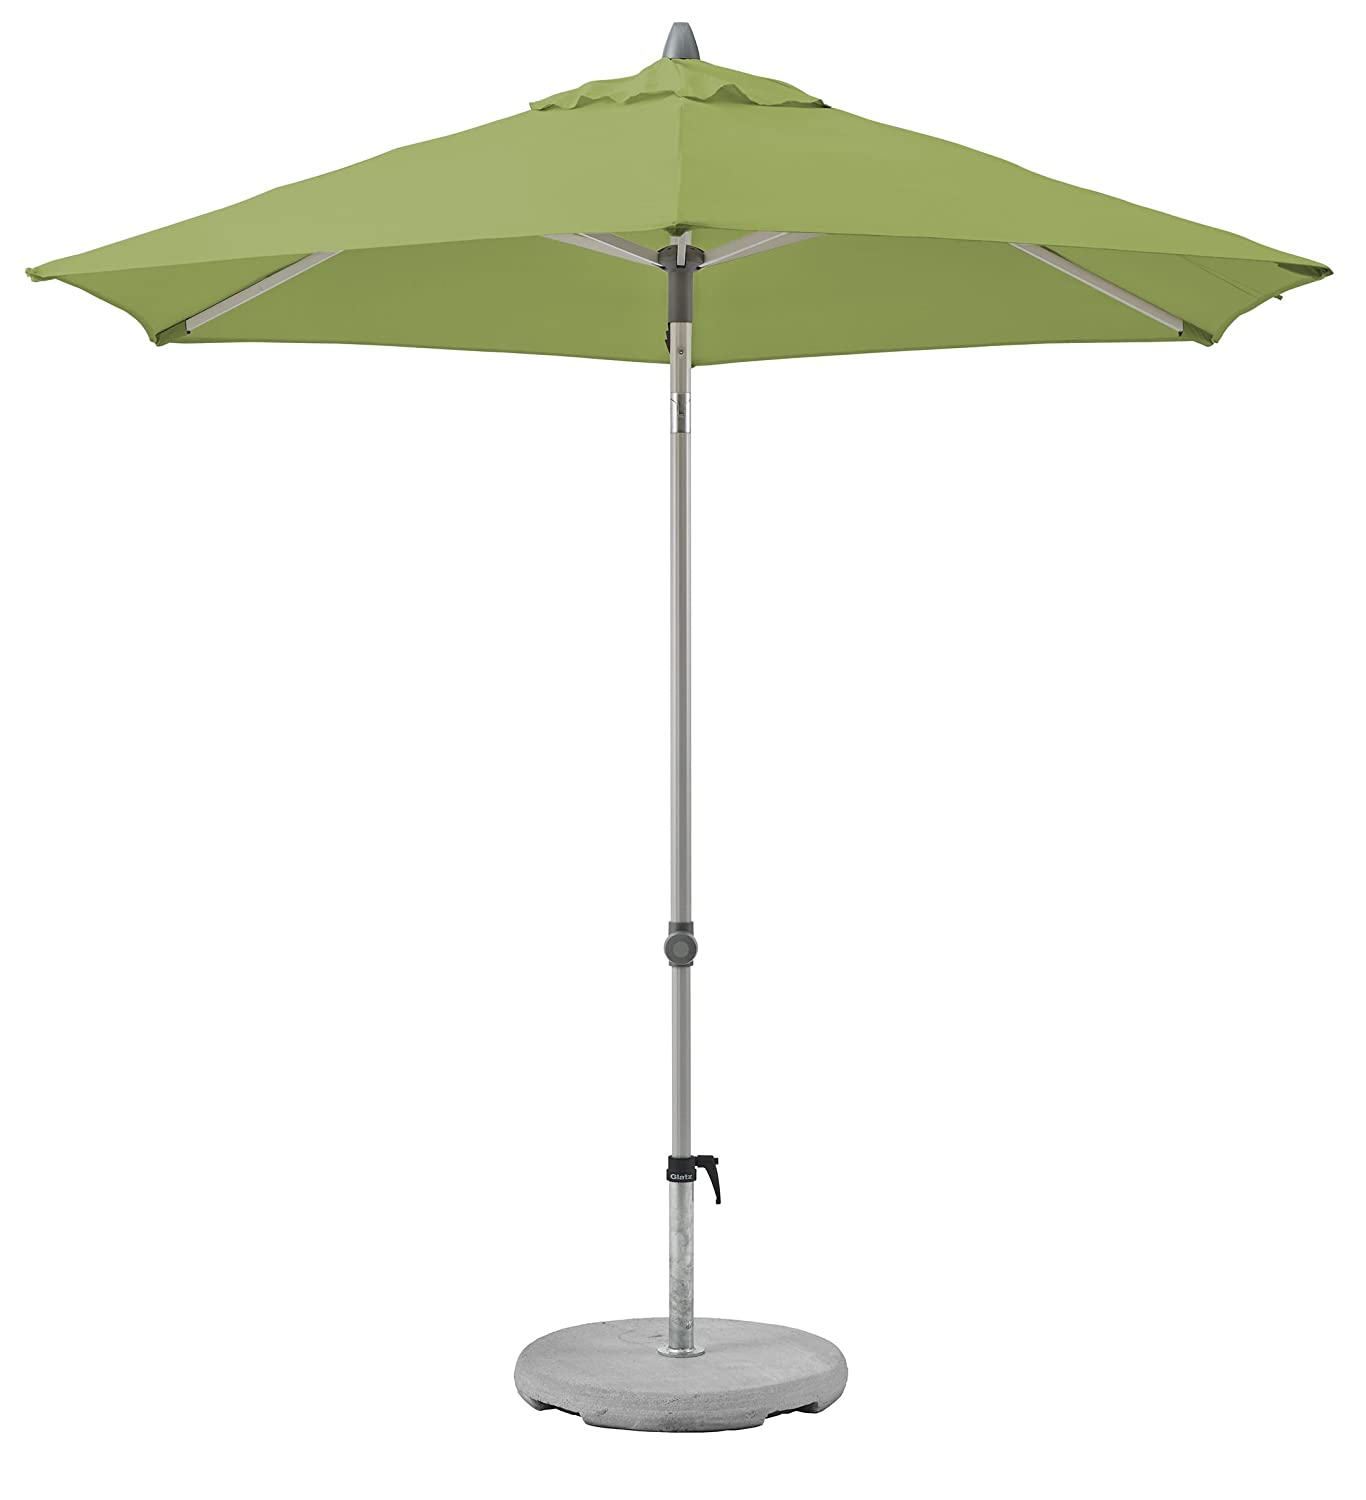 Suncomfort by by by Glatz Push up, off-Grau, 250 cm rund, Gestell Aluminium, Bespannung Polyester, 4.6 kg d7c8a9